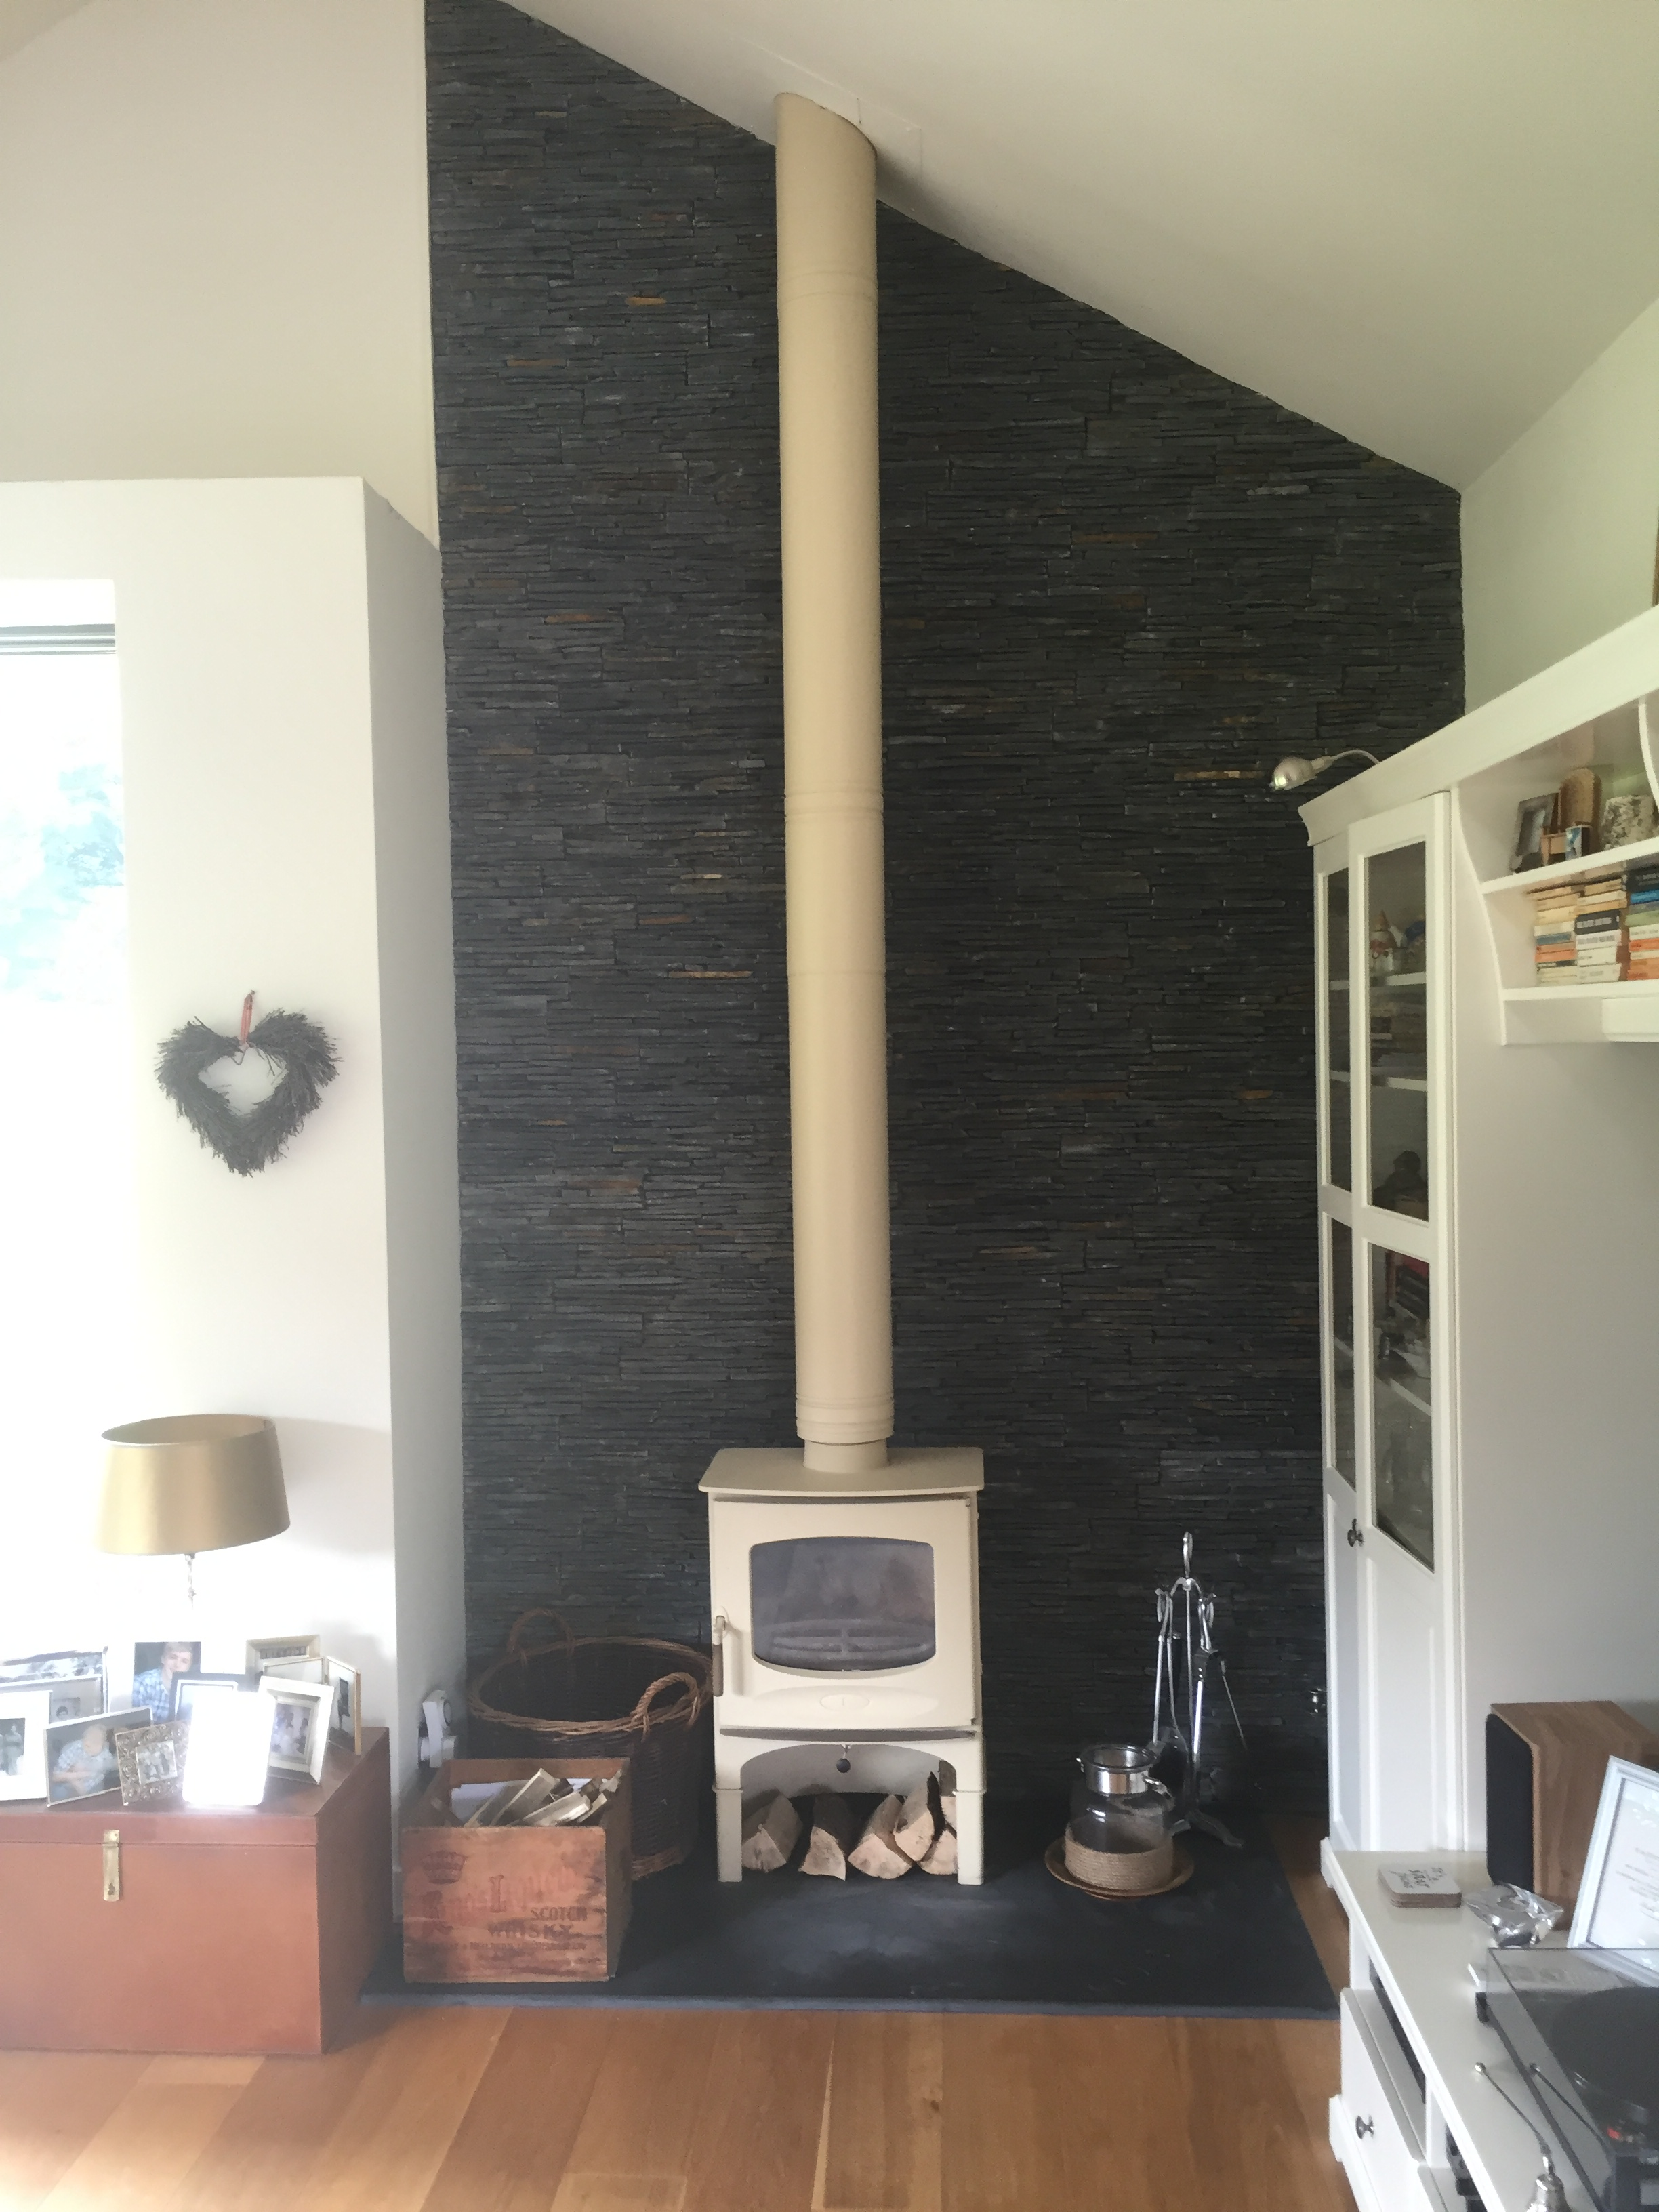 C-Four alomond with Slate Cladding to Wall